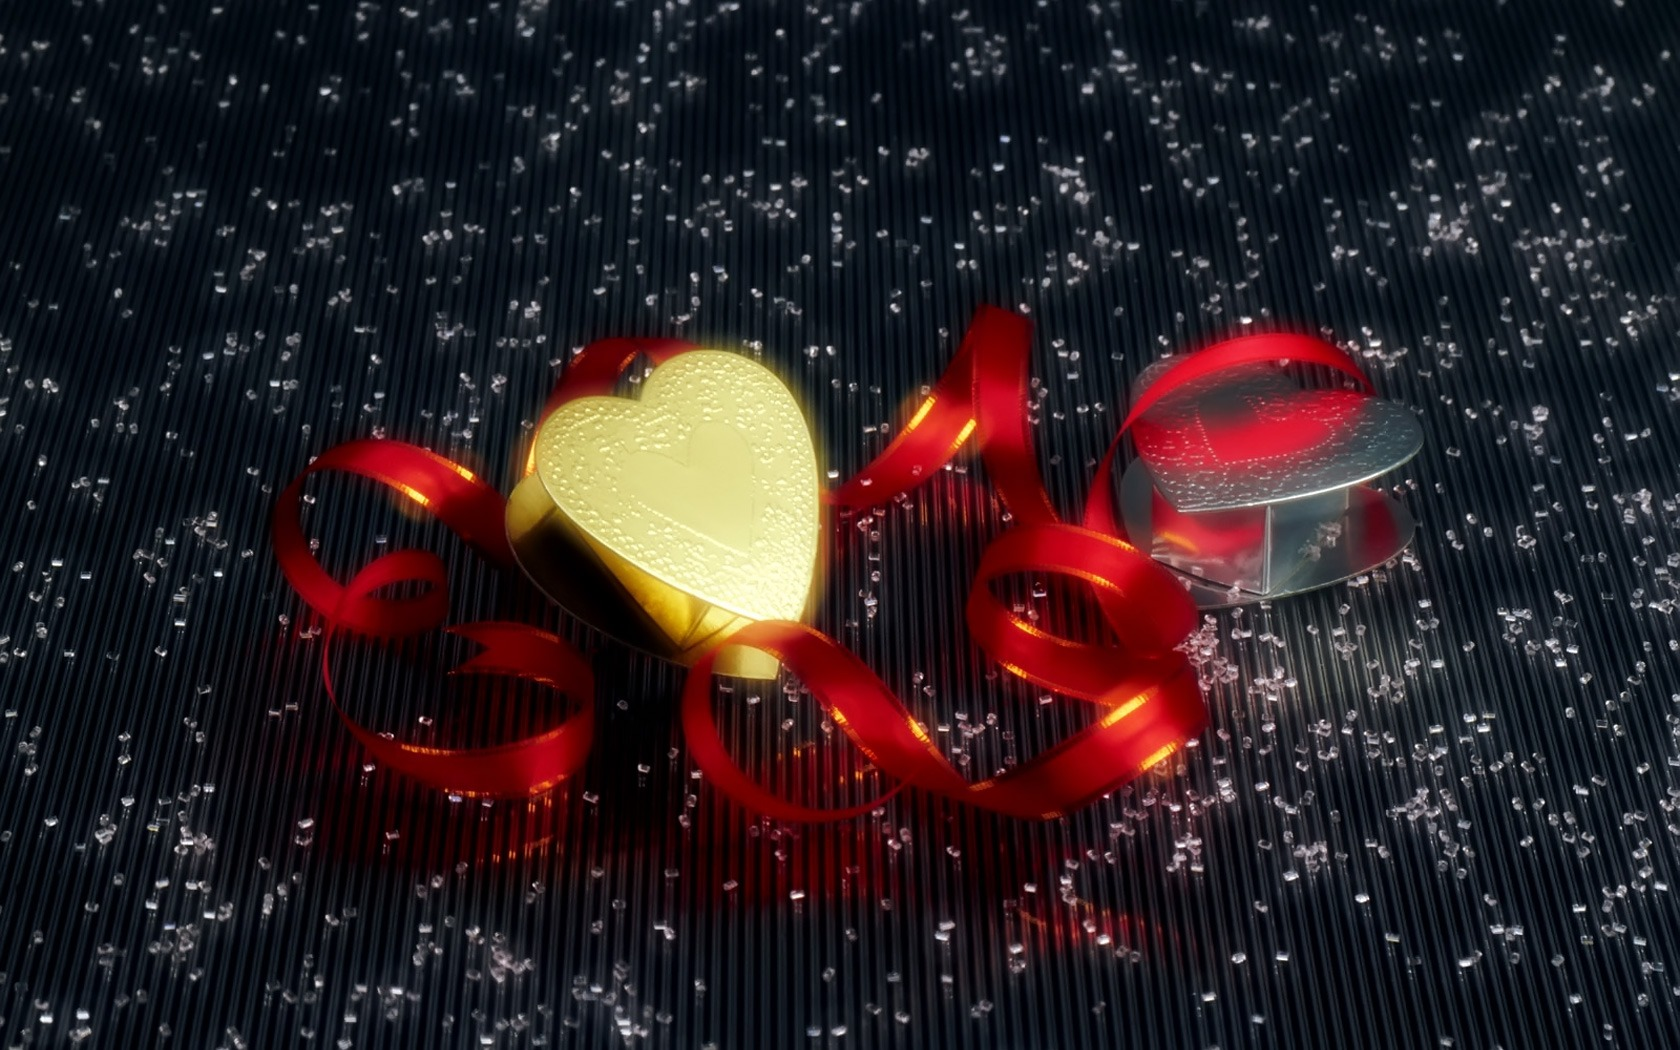 Christmas Heart.Christmas Hearts Wallpaper Christmas Holidays Wallpapers In